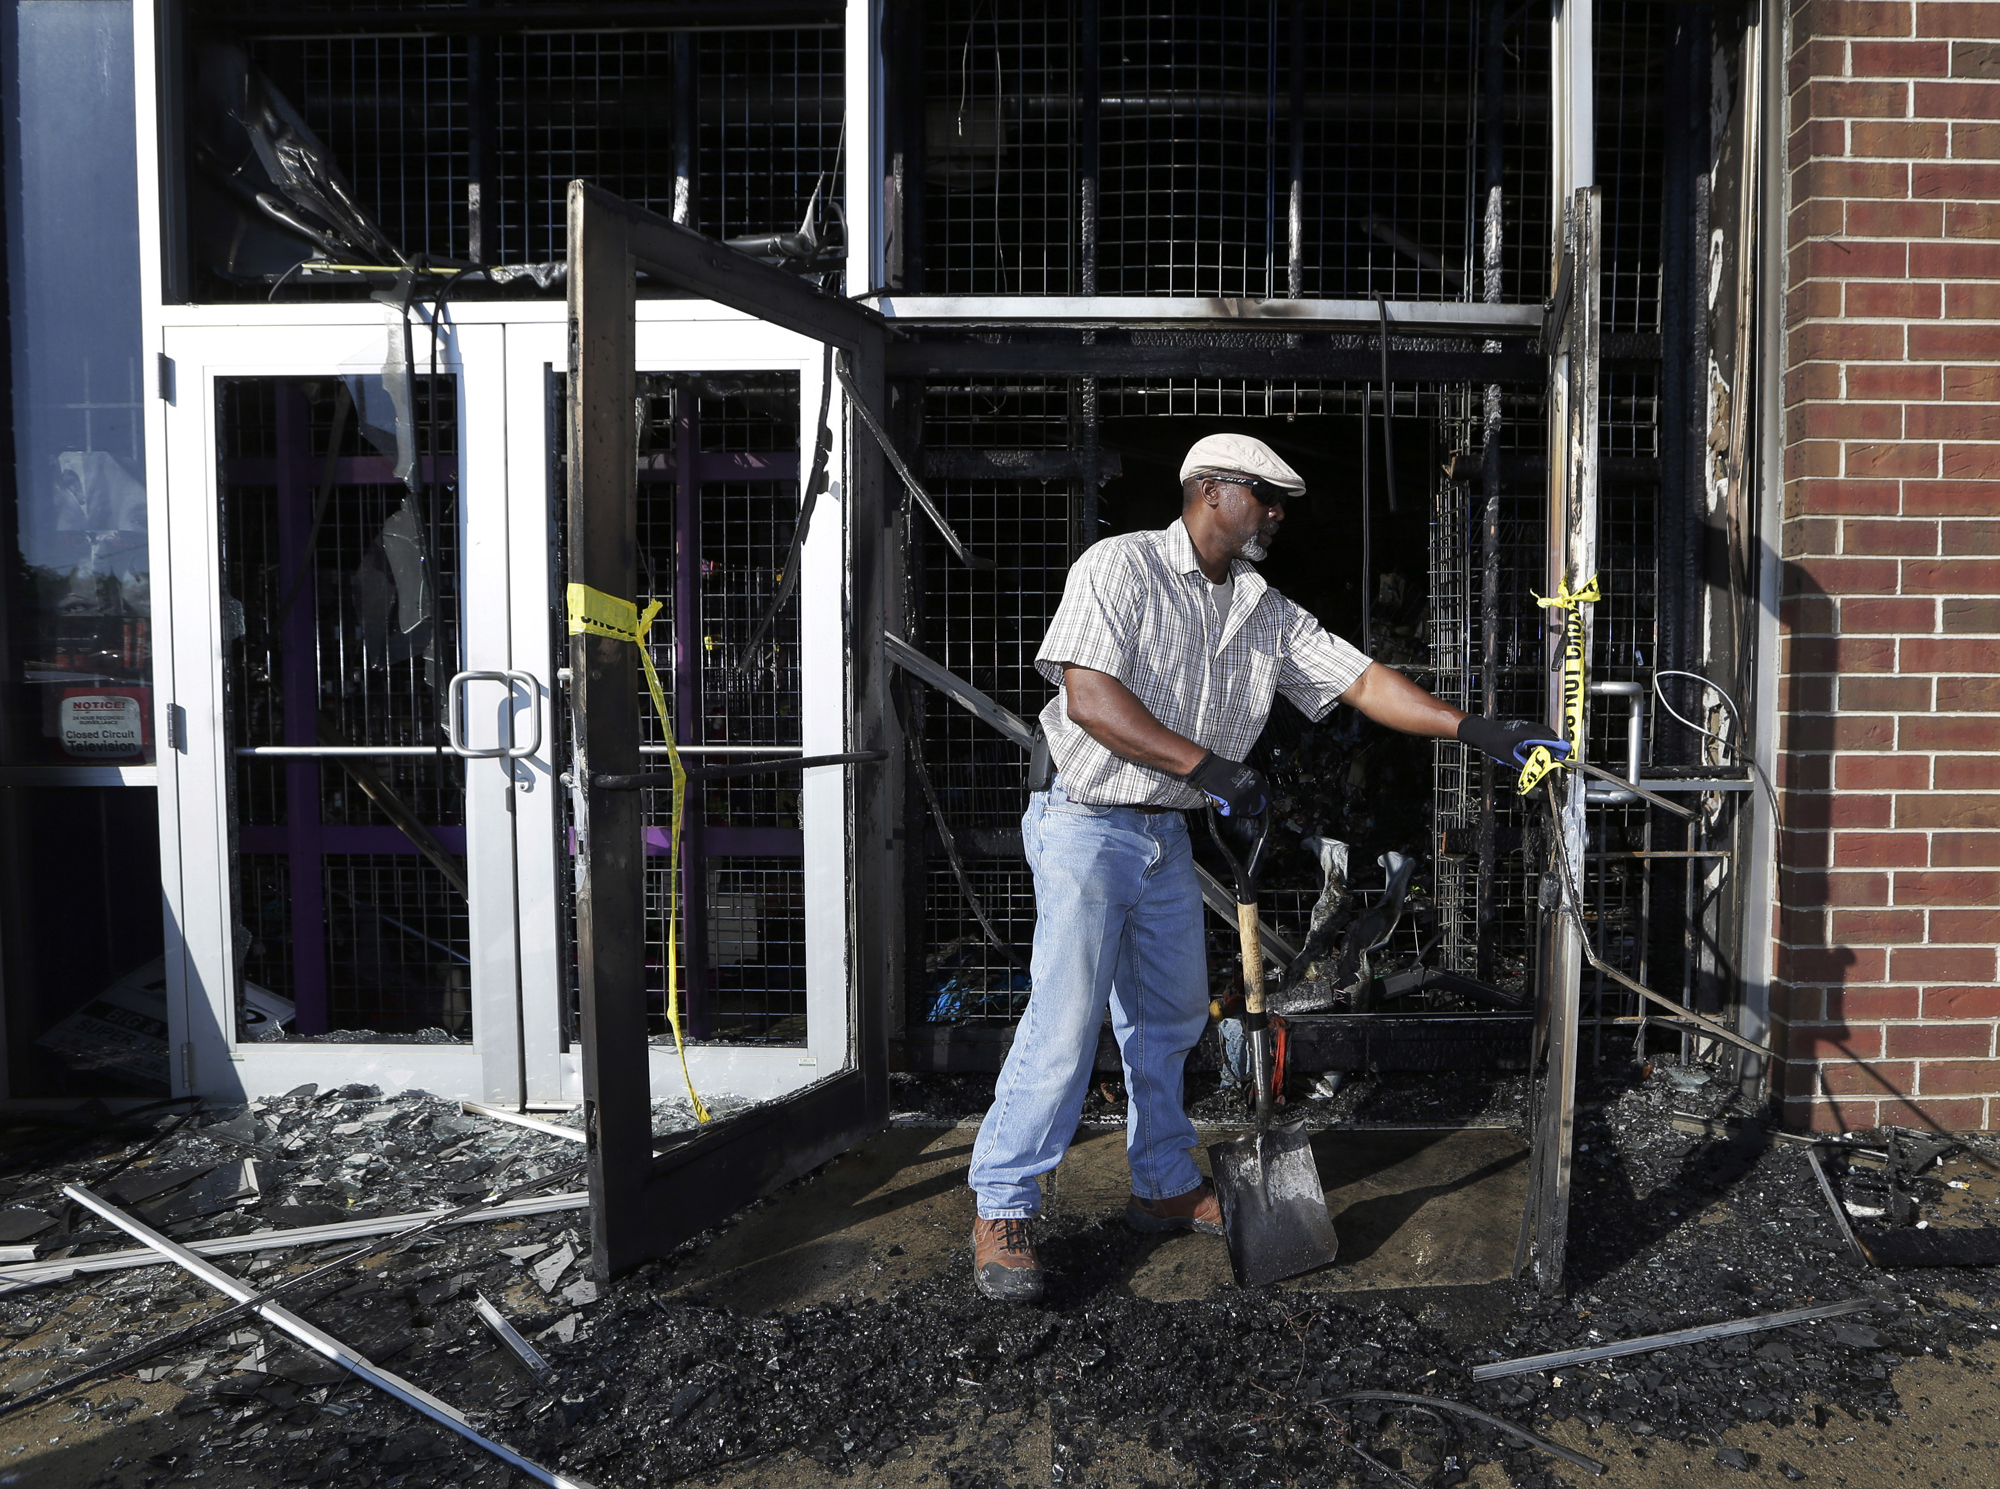 A city of Milwaukee employee cleans up a gutted Jet Beauty Supply, which was destroyed by fire and looting, in Milwaukee on Sunday, Aug. 14, 2016. The black man whose killing by police touched off rioting in Milwaukee was shot by a black officer after turning toward him with a gun in his hand, the police chief said Sunday, as Wisconsin's governor put the National Guard on standby against any further violence on the city's mostly black north side.